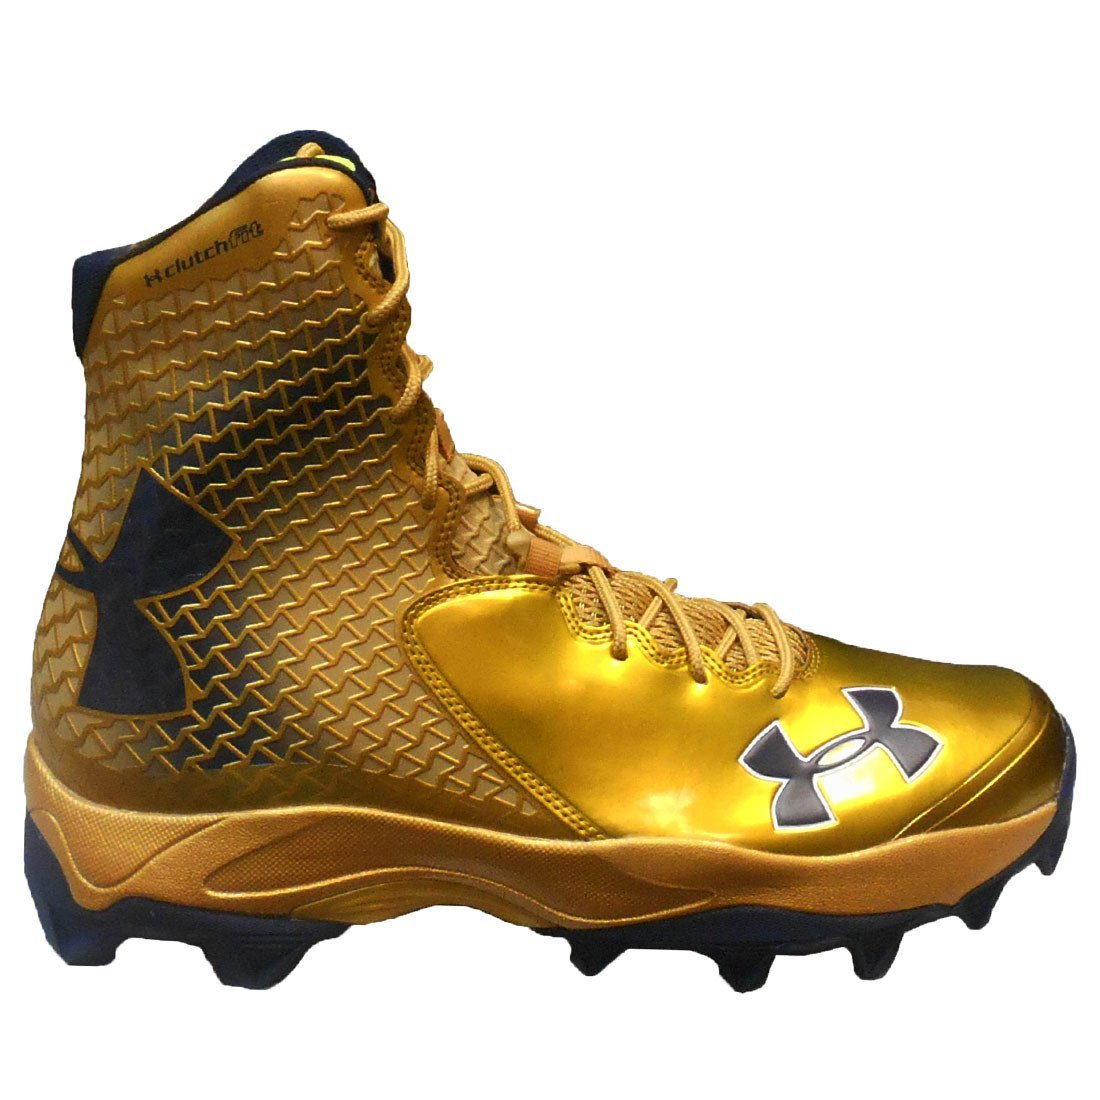 Under Armour メンズ B072F7BMYY 16 D(M) US|Metallic Gold/Metallic Gold/Midnight Navy Metallic Gold/Metallic Gold/Midnight Navy 16 D(M) US